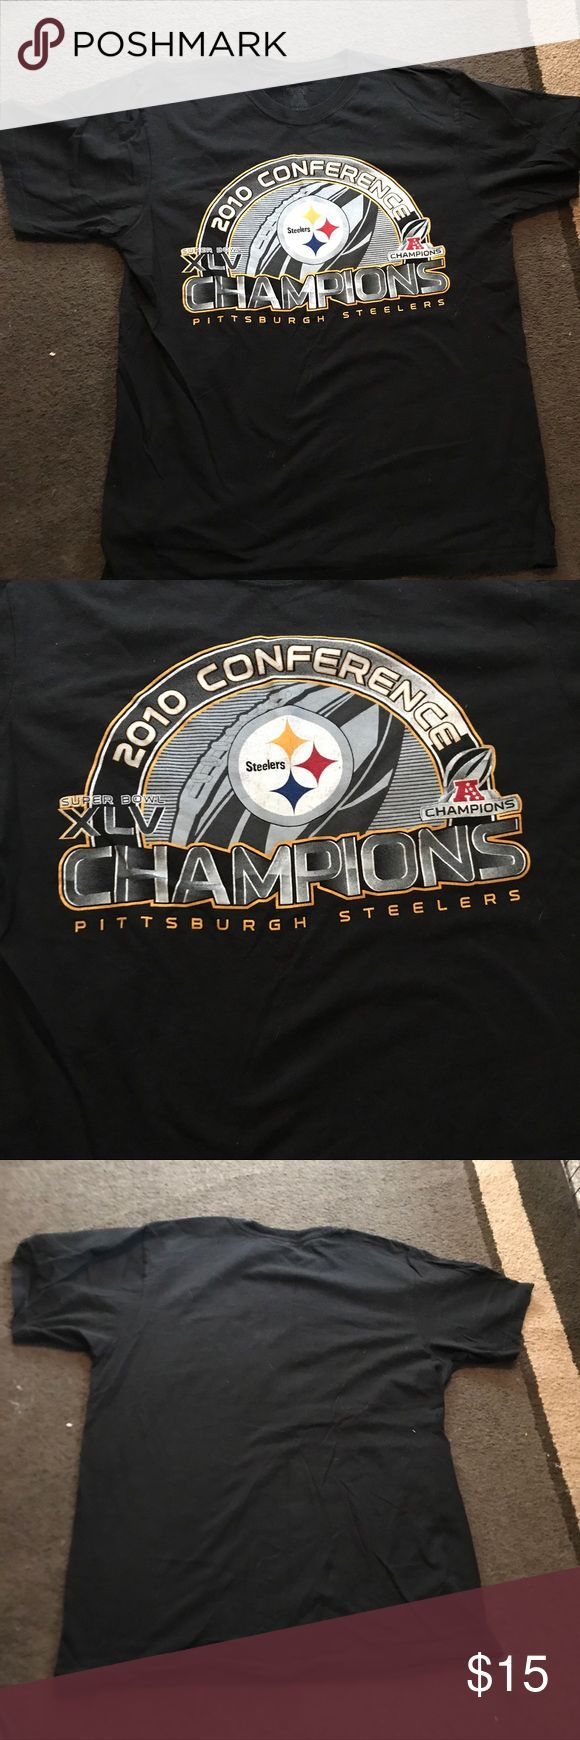 Pittsburgh steelers conference champions t shirt GUC! From 2010 playoffs. Unisex size large Shirts Tees - Short Sleeve